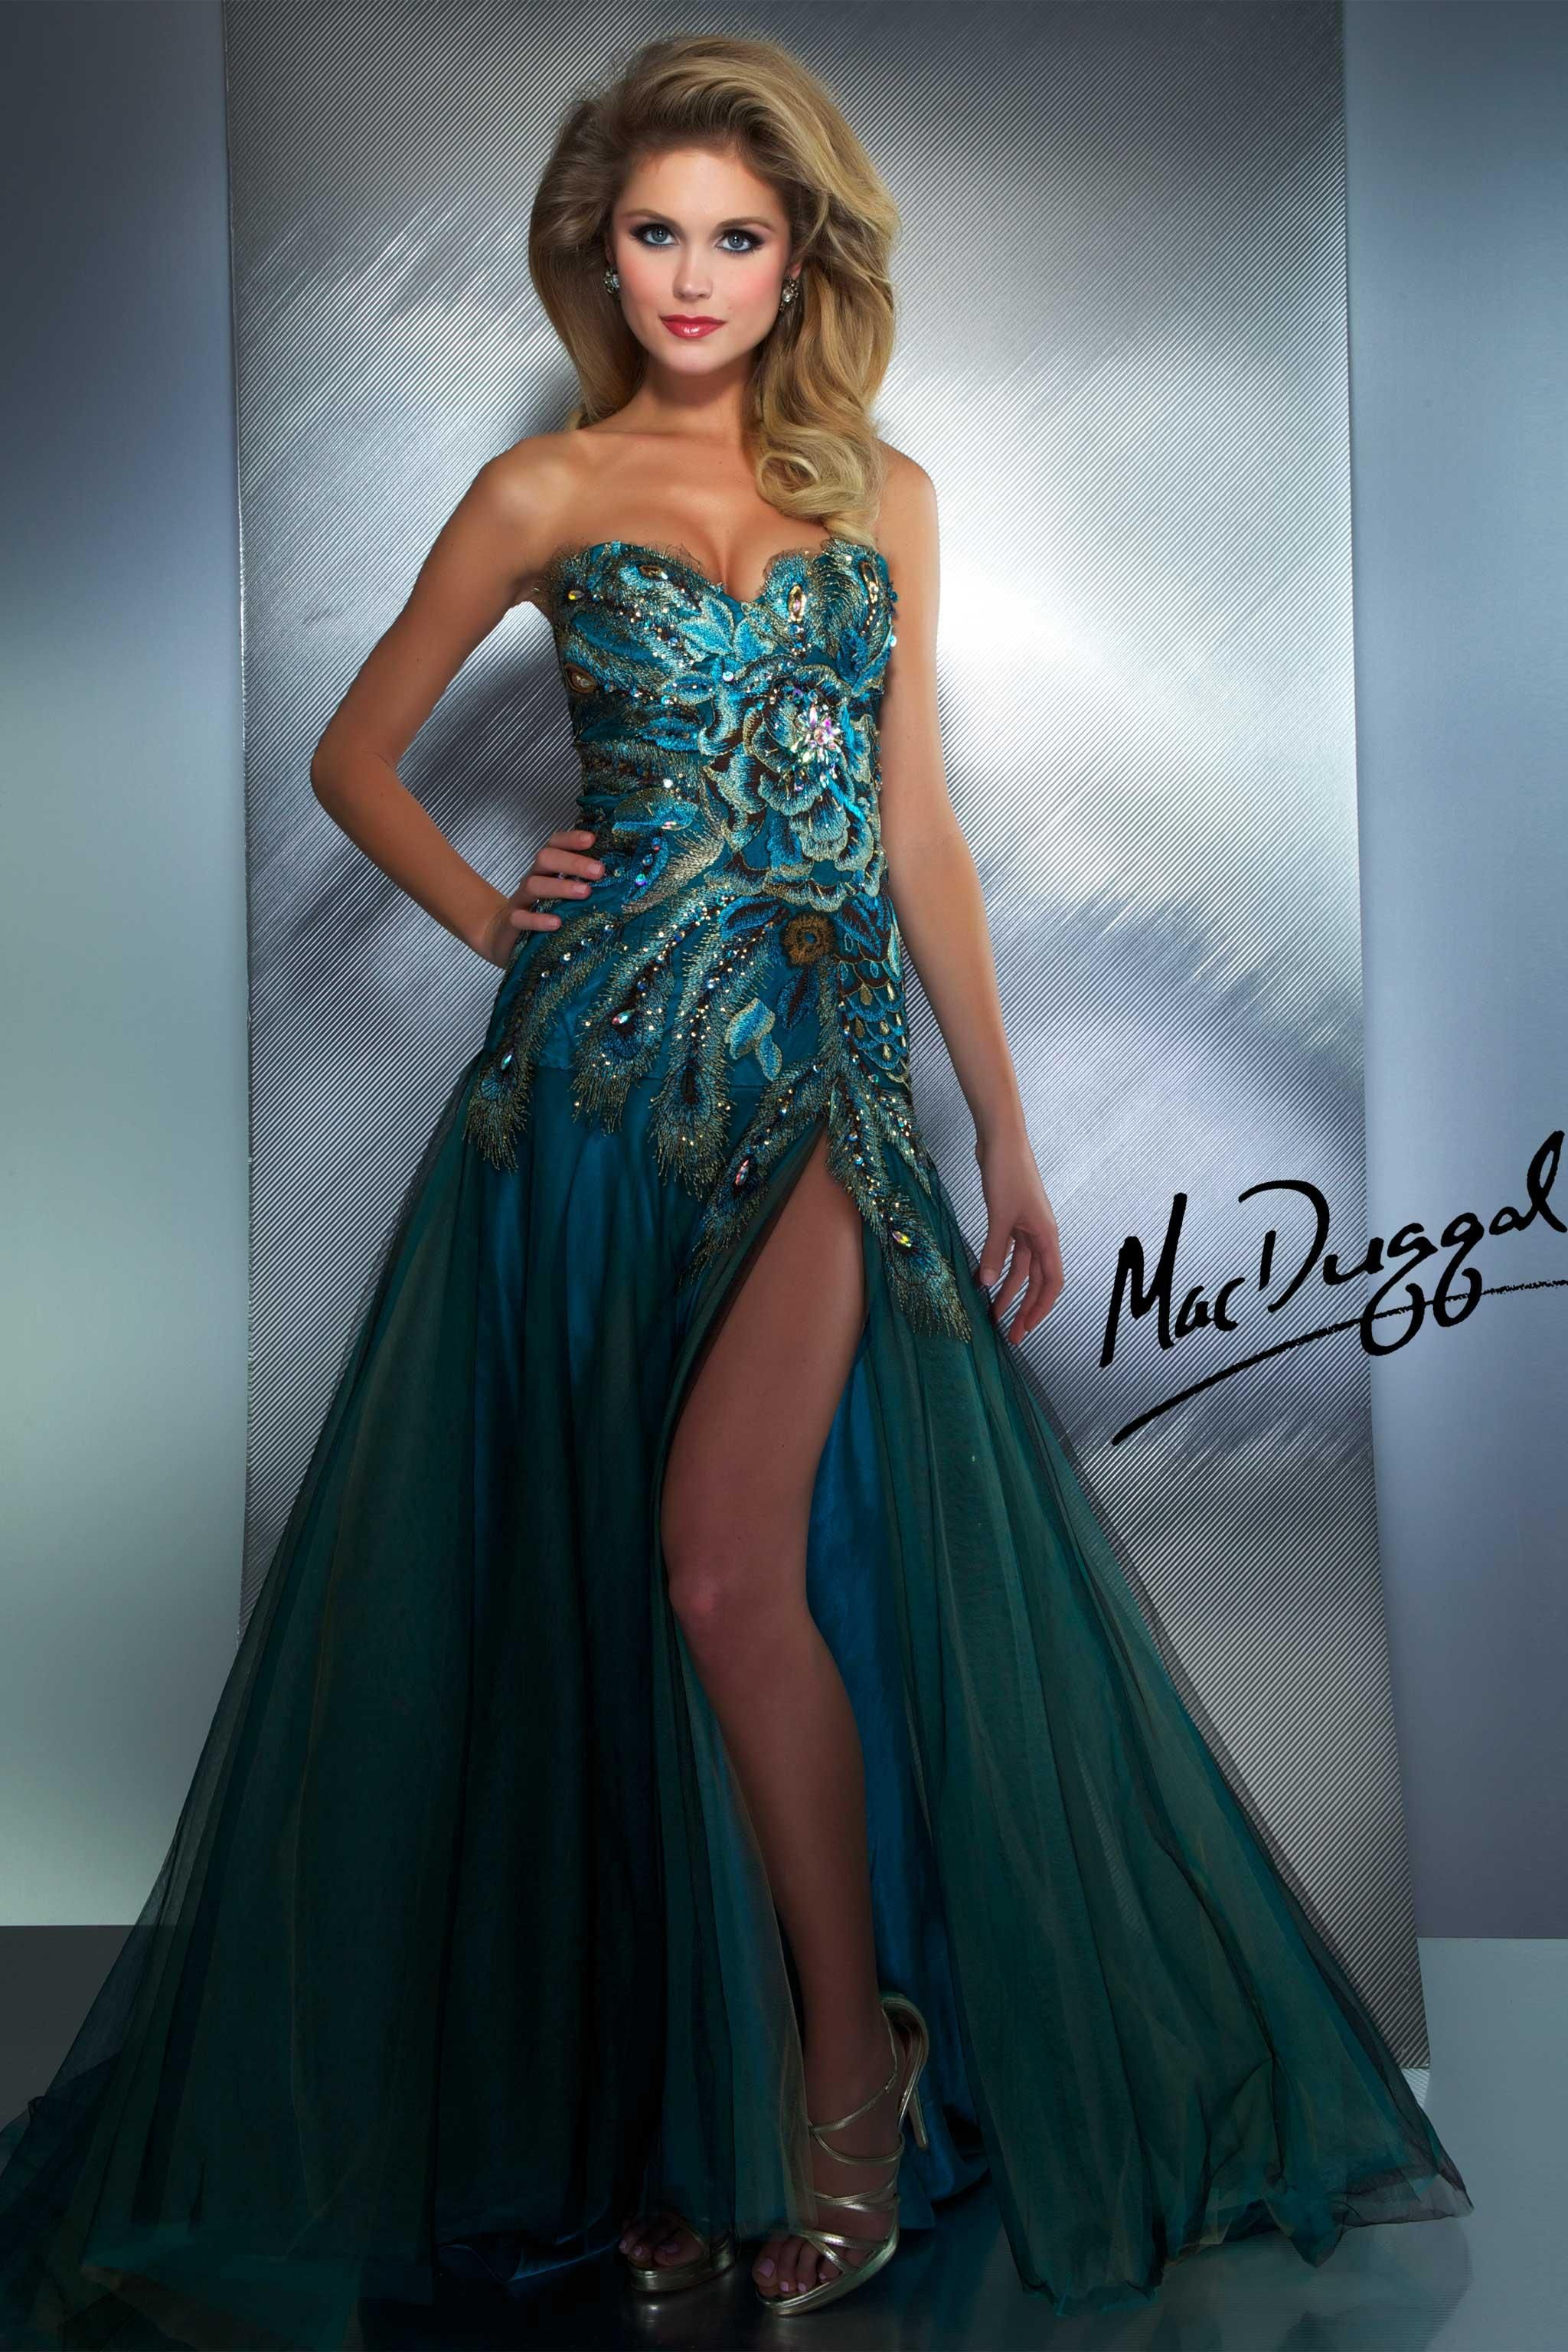 1000  images about peacock dresses on Pinterest - Gowns- Royal ...